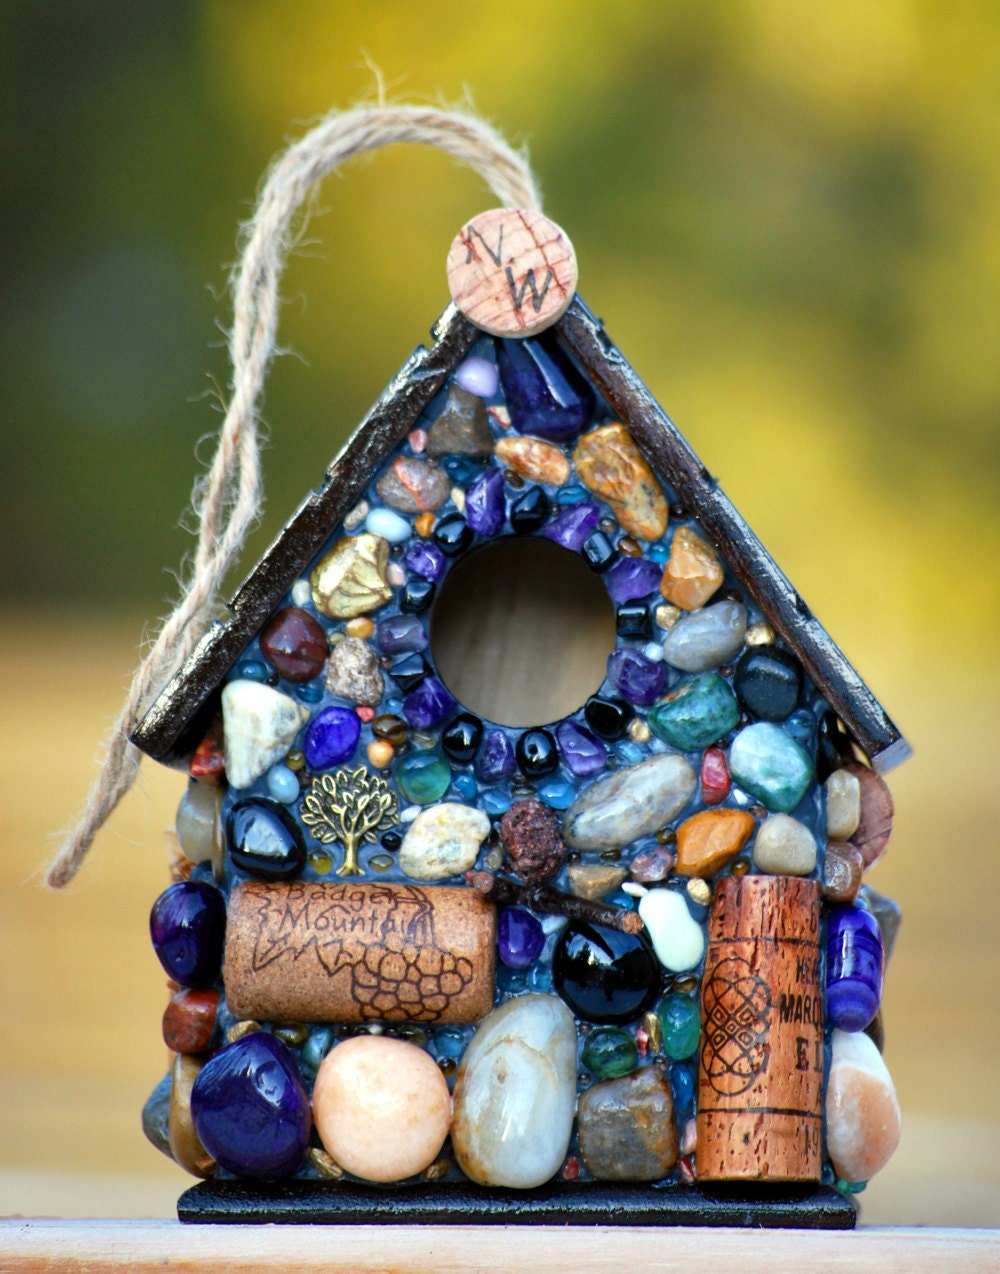 Wine Cork Birdhouse And Mosaic Stone Functional Garden Decor